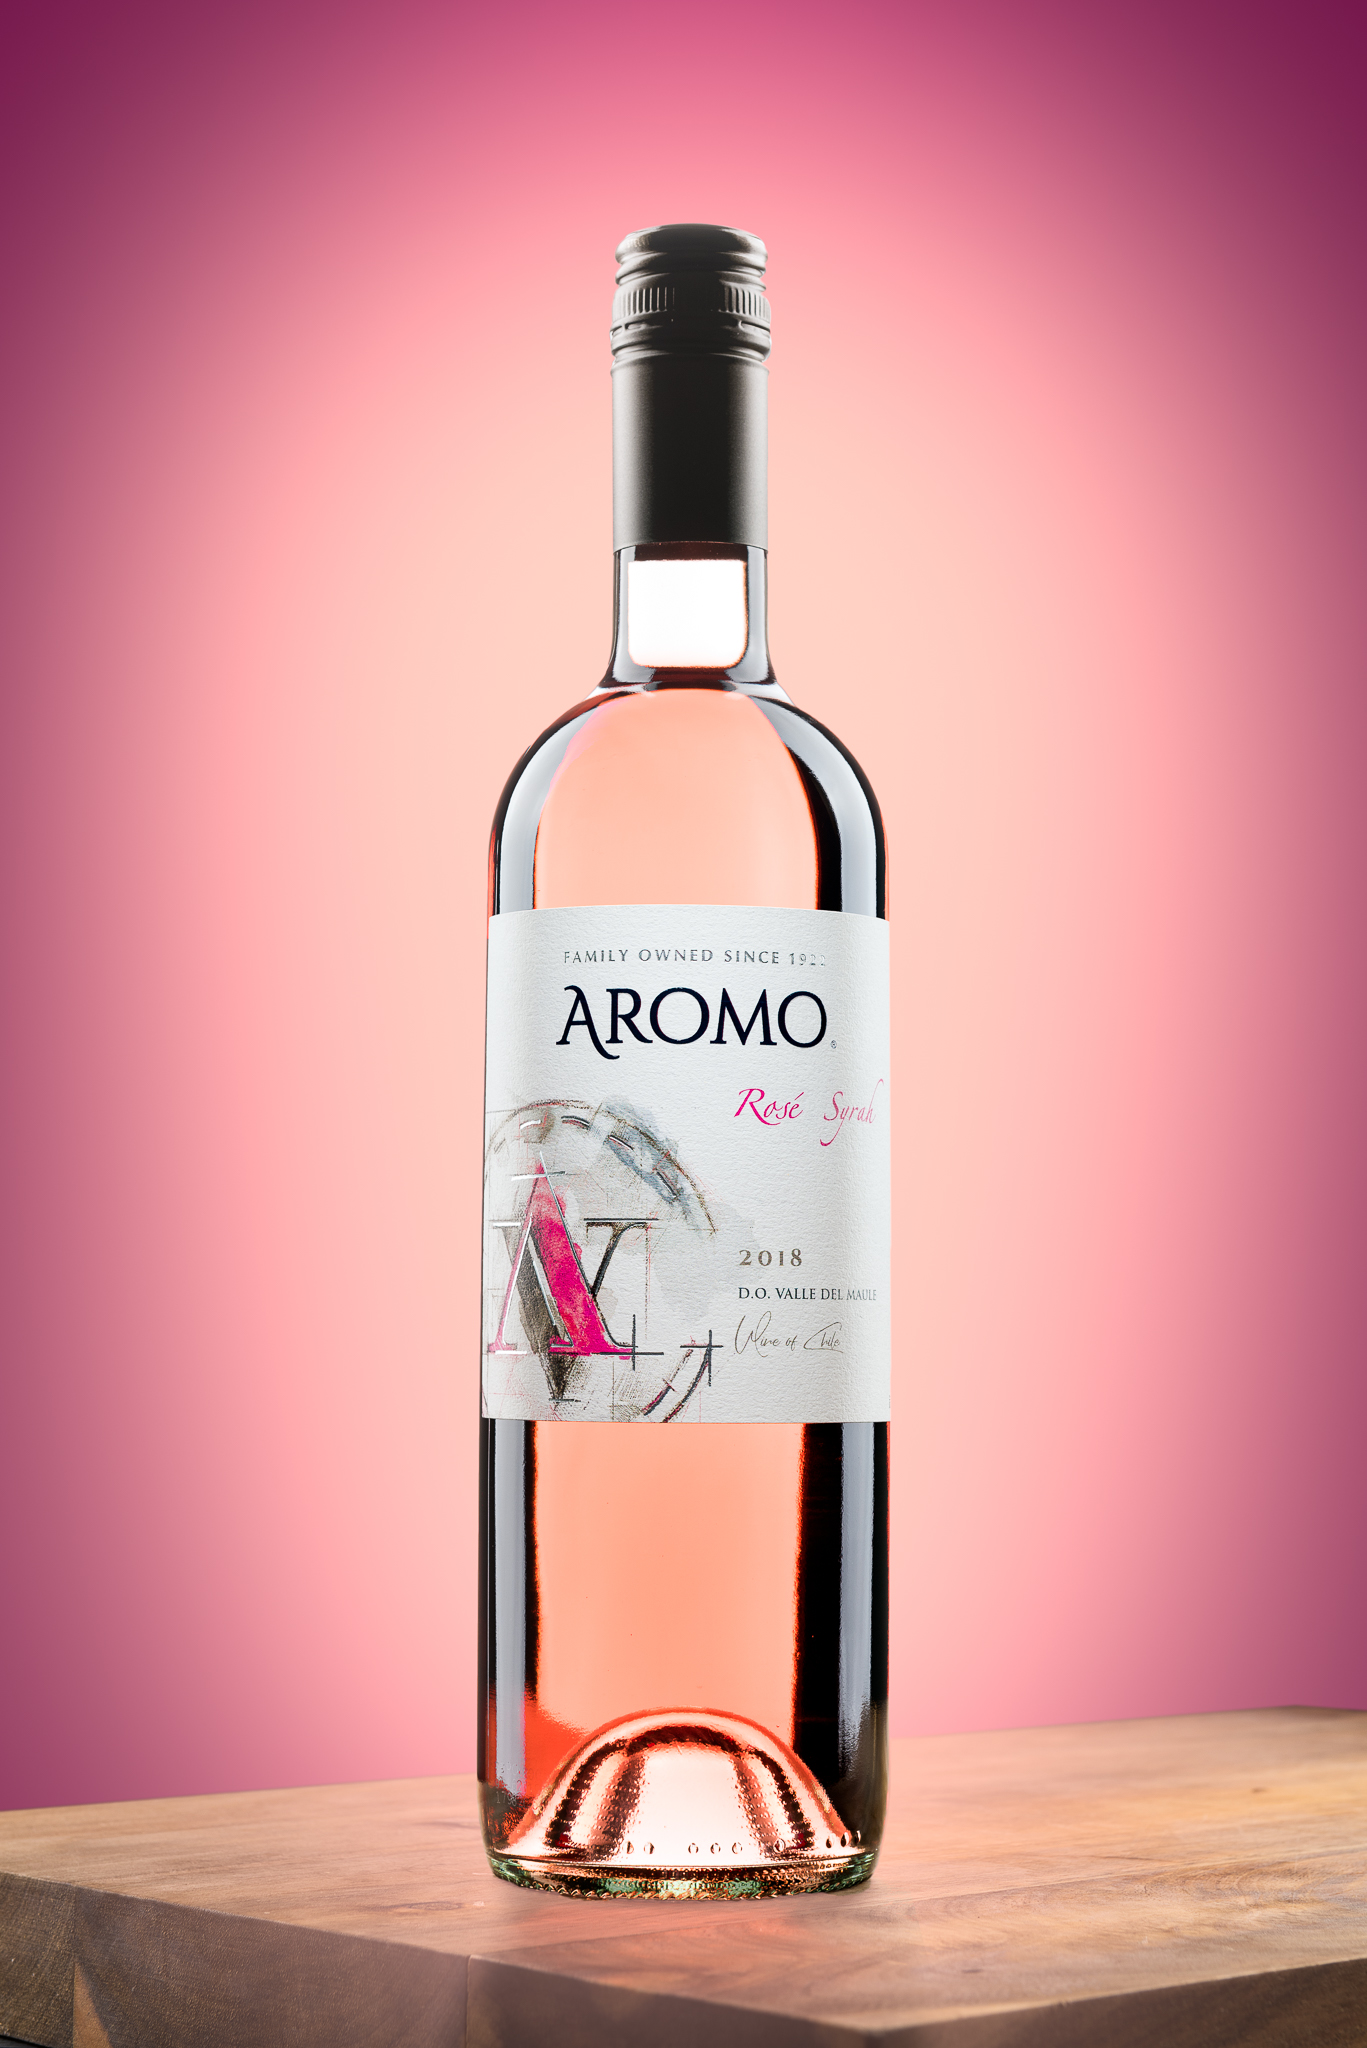 dusty-wooddell-product-photography-aromo.jpg